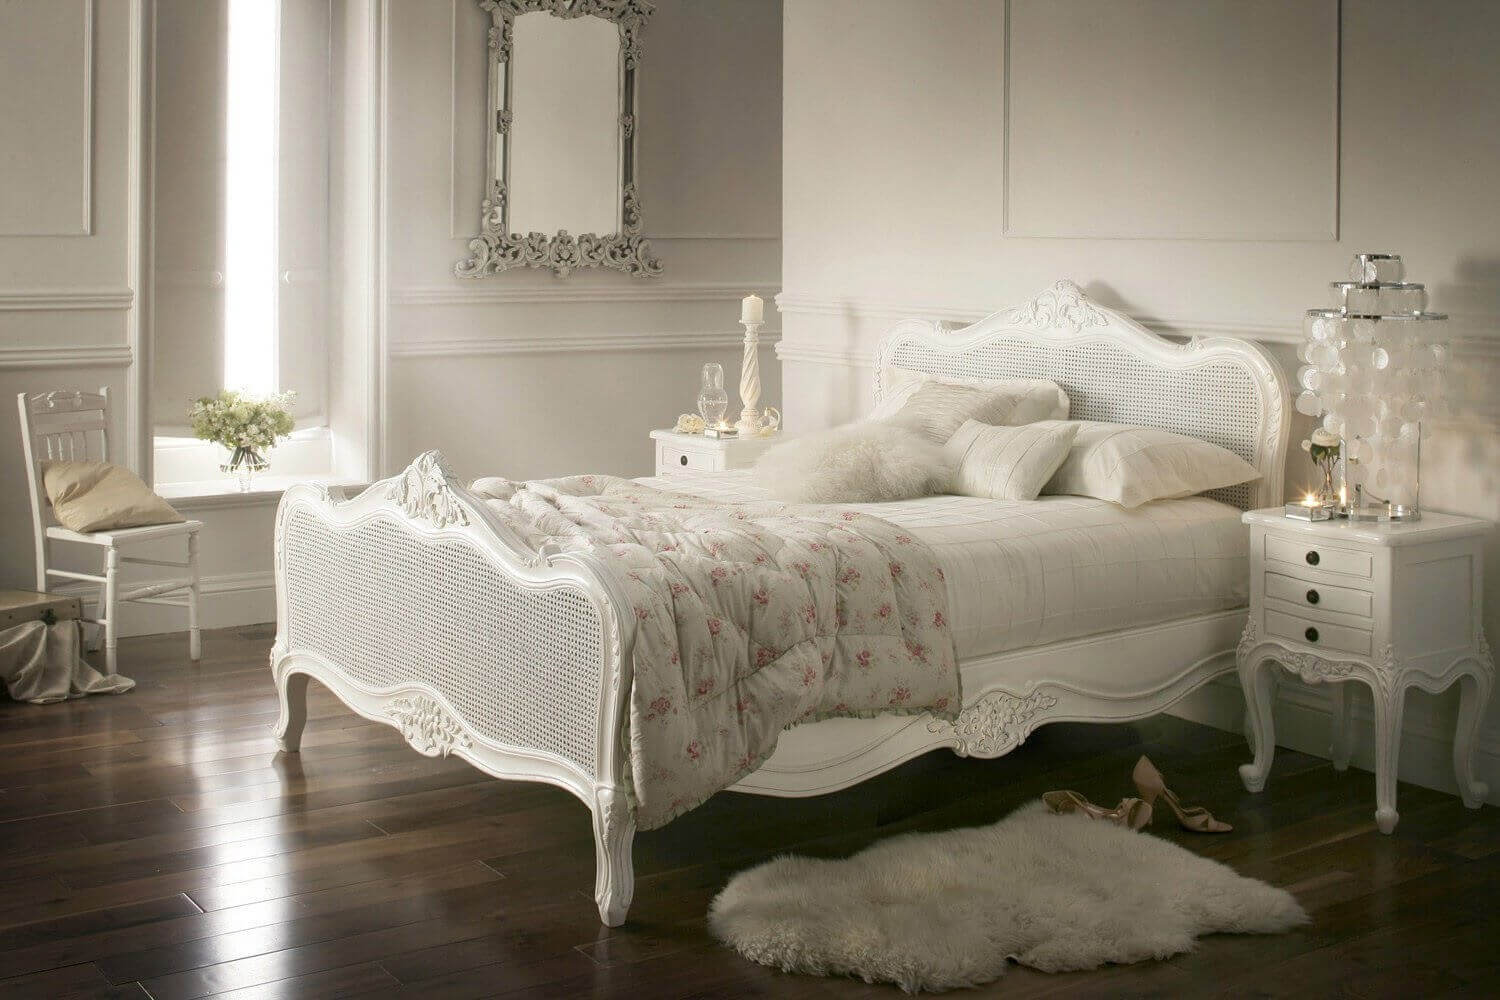 classic bedroom decorating ideas | 10 Vintage Home Trends That are in Style Right Now